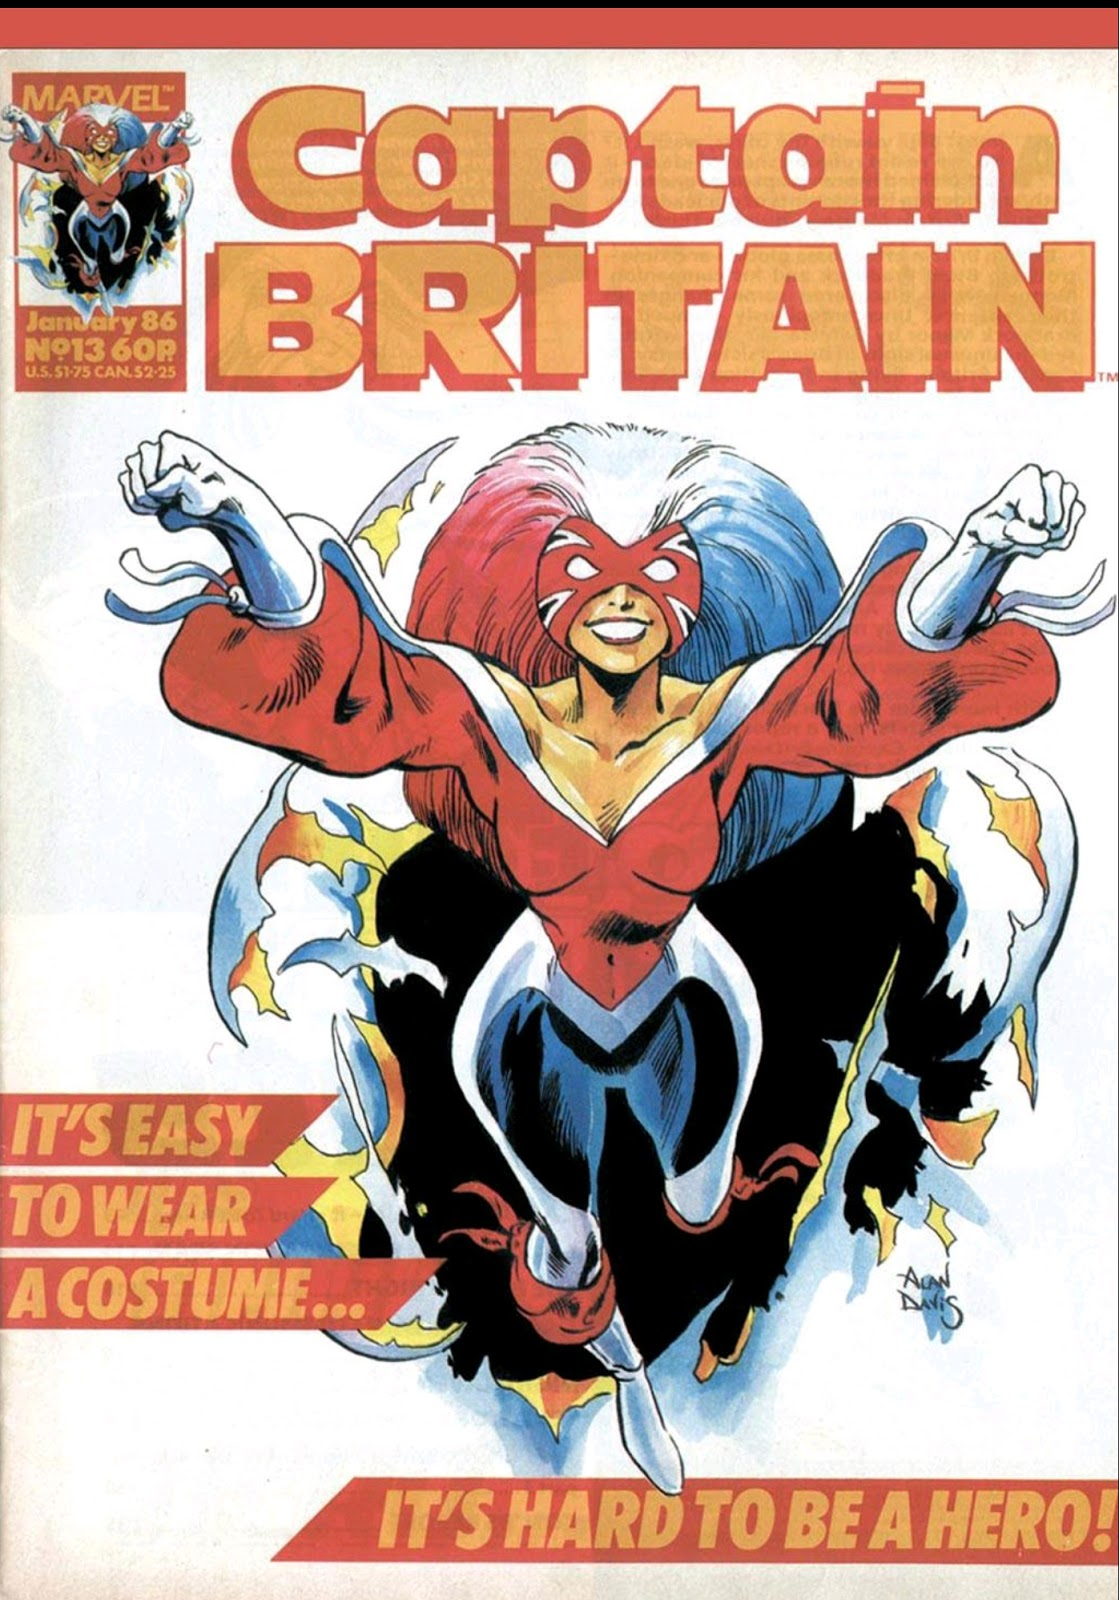 Slay Monstrobot Of The Deep Bold Fashion Choices Captain Hi Hansithe Codes Do Point To An Electrical Problem With Transfer You Can Give Credit Alan Davis But Theres No Way Deny She Look Sooooo Much Better Than Anything Shes Ever Worn As Psylocke